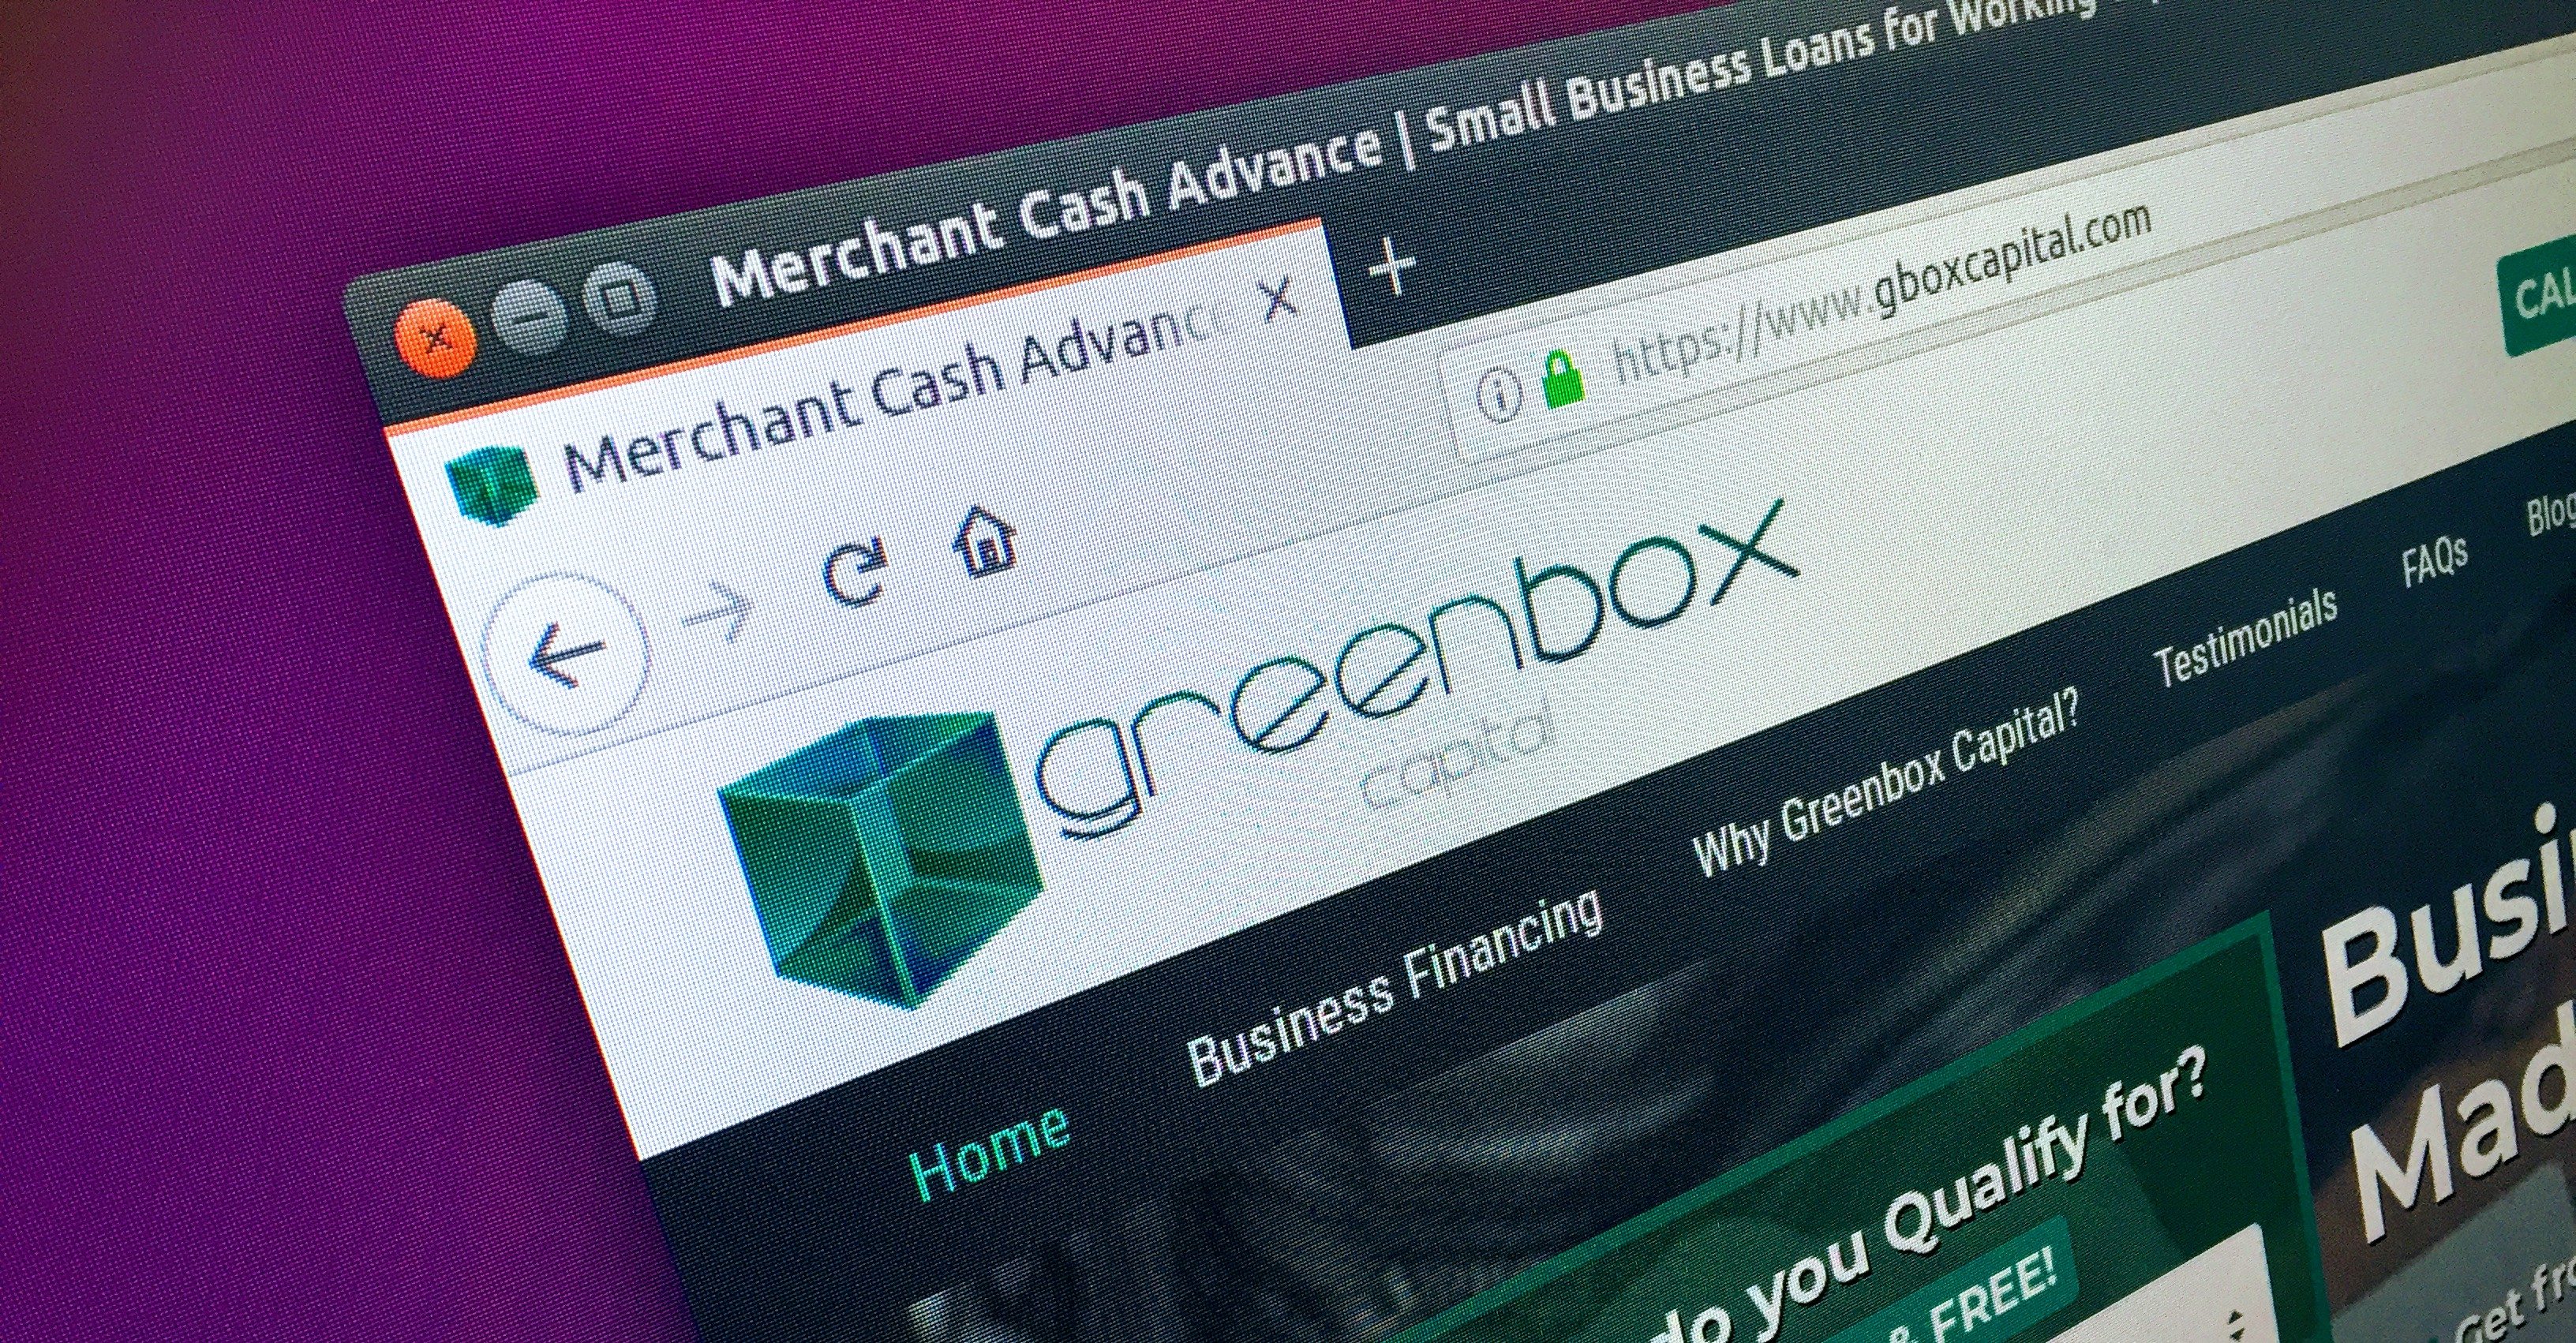 Greenbox Capital Website